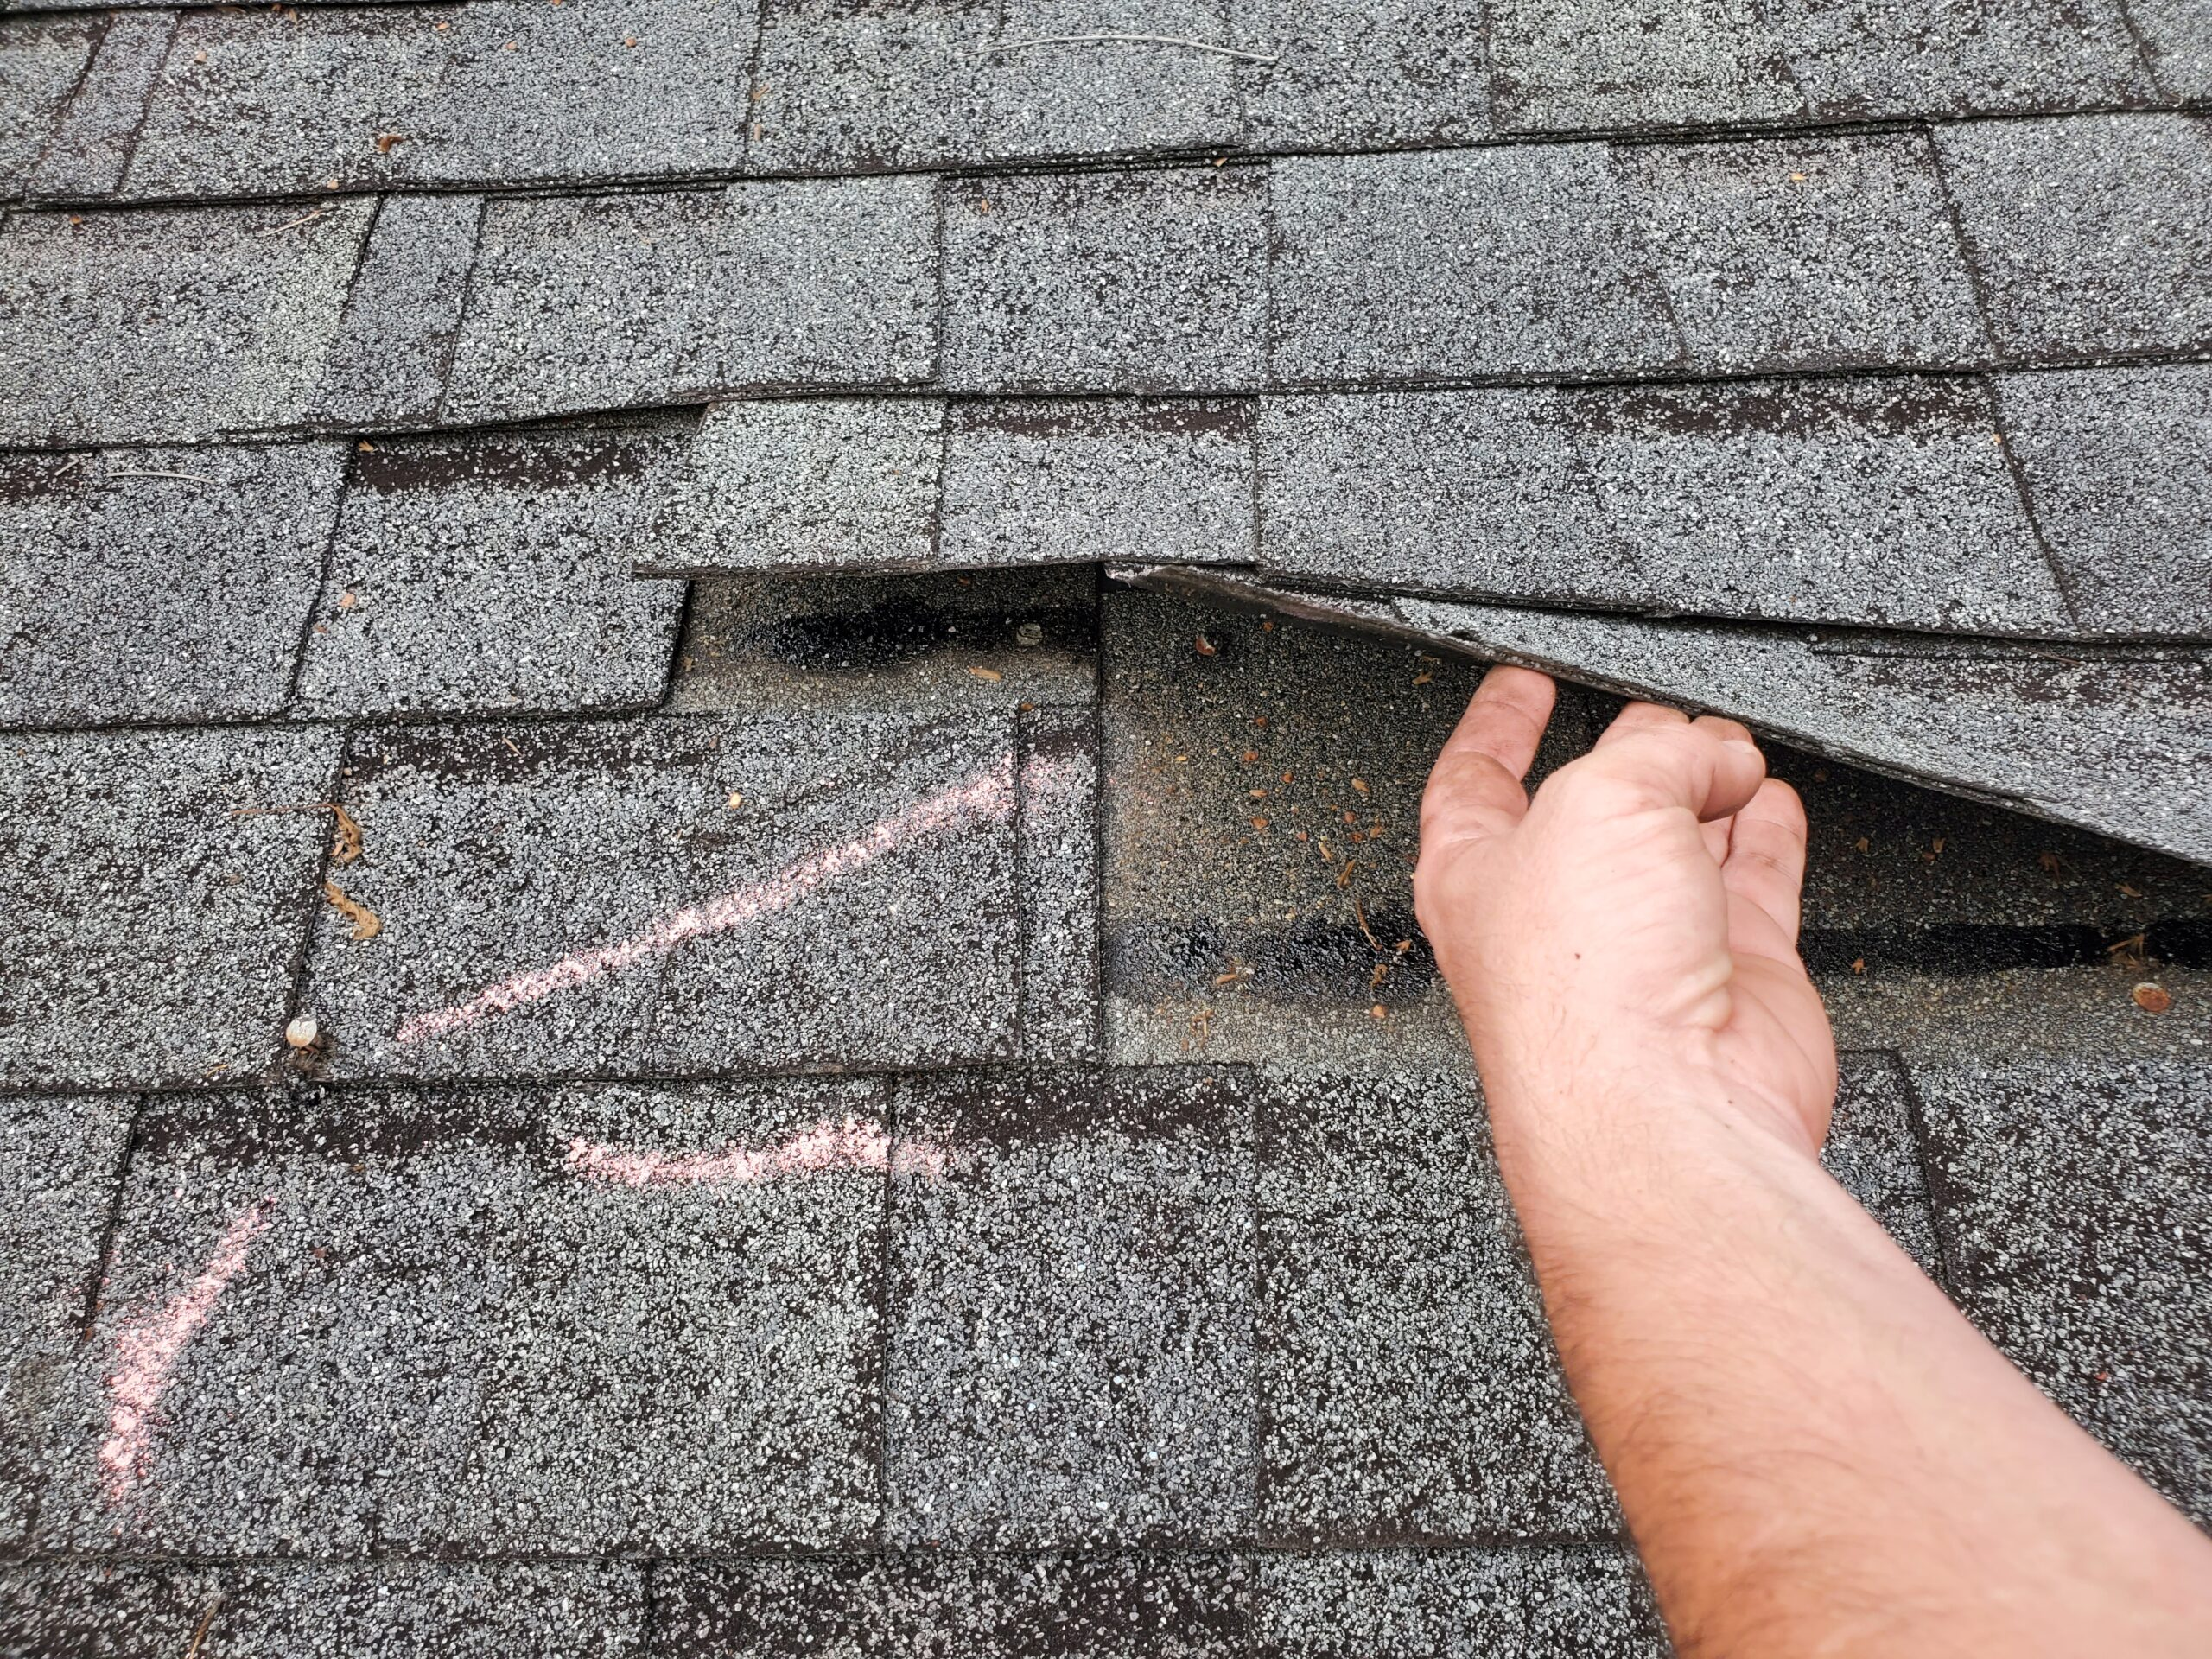 this is a picture of shingles that are easily lifted together also known as zippered shingles